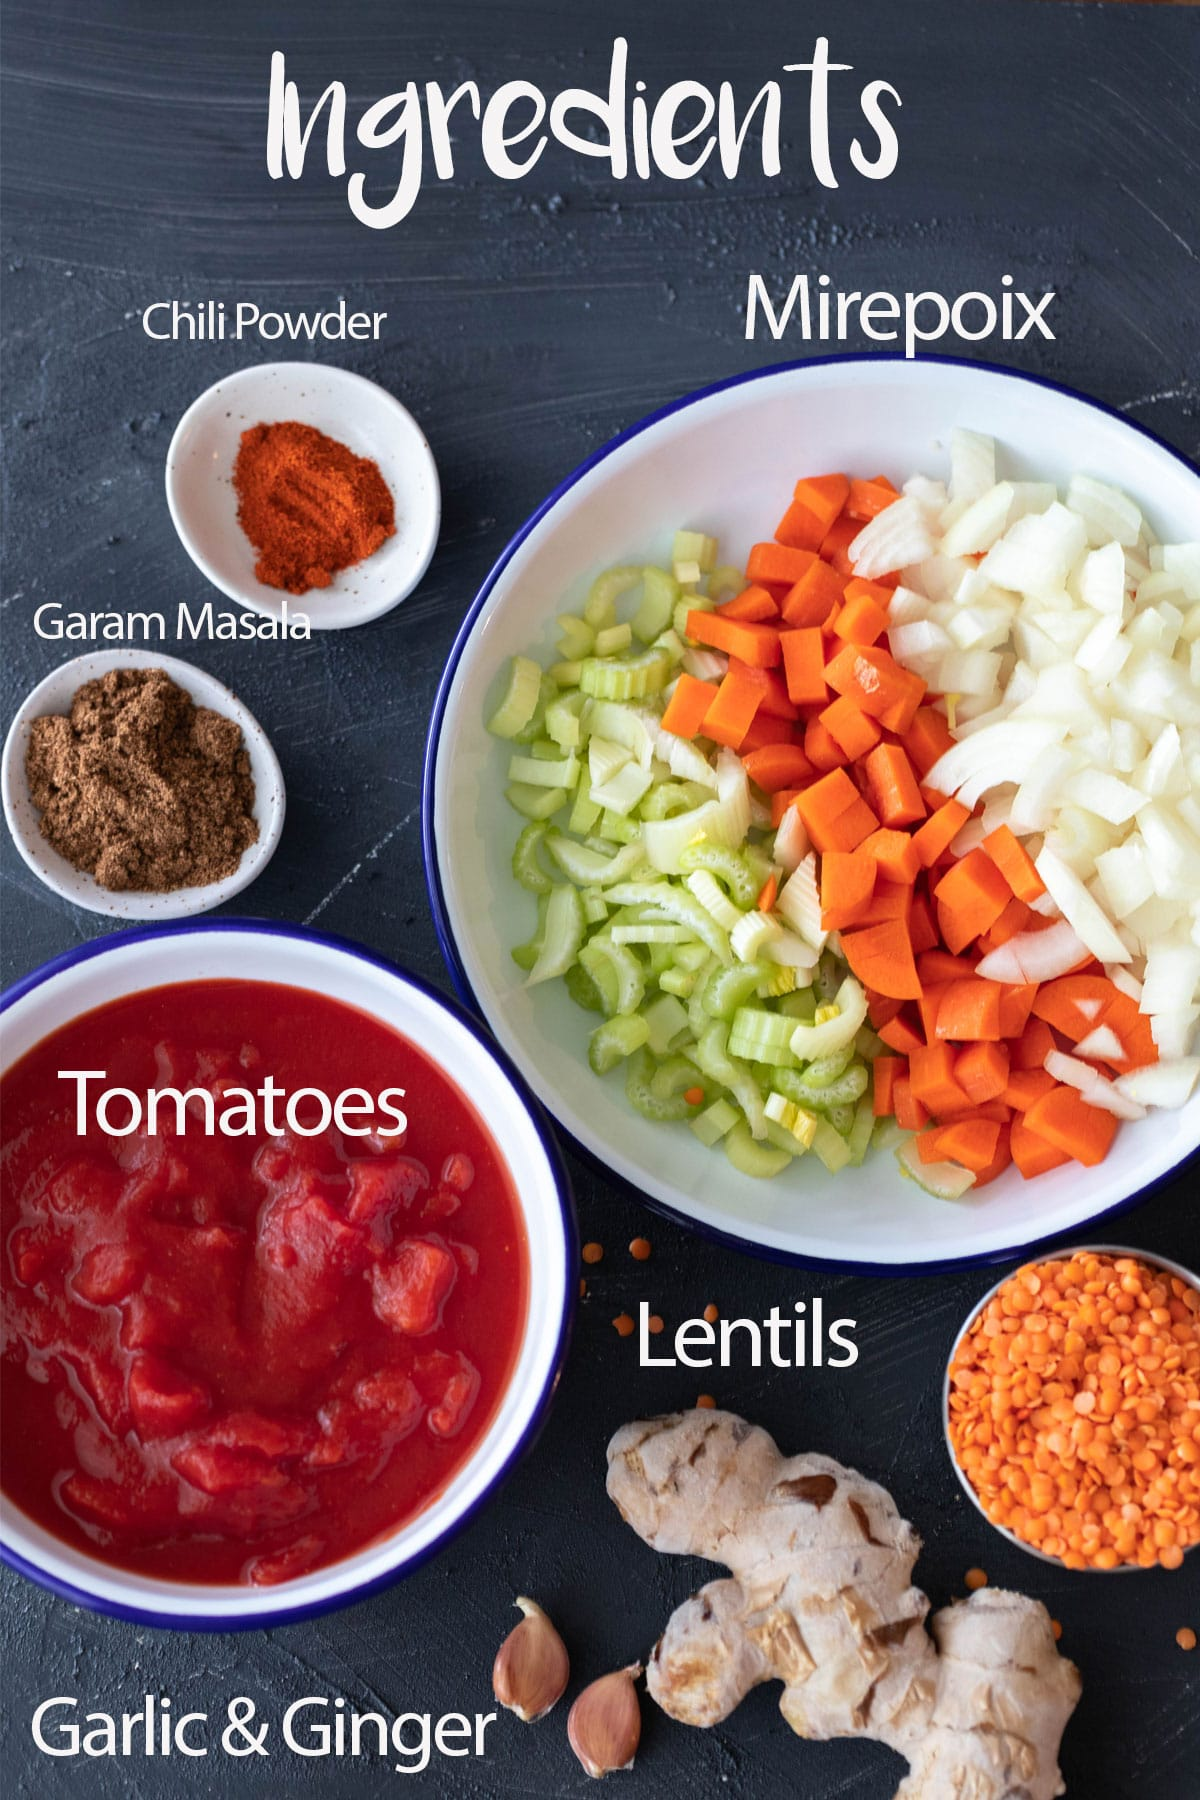 spicy lentil soup ingredients chilies powder, garam masala, mirepoix, tomatoes, garlic and ginger and lentils. ingredients laid on a board